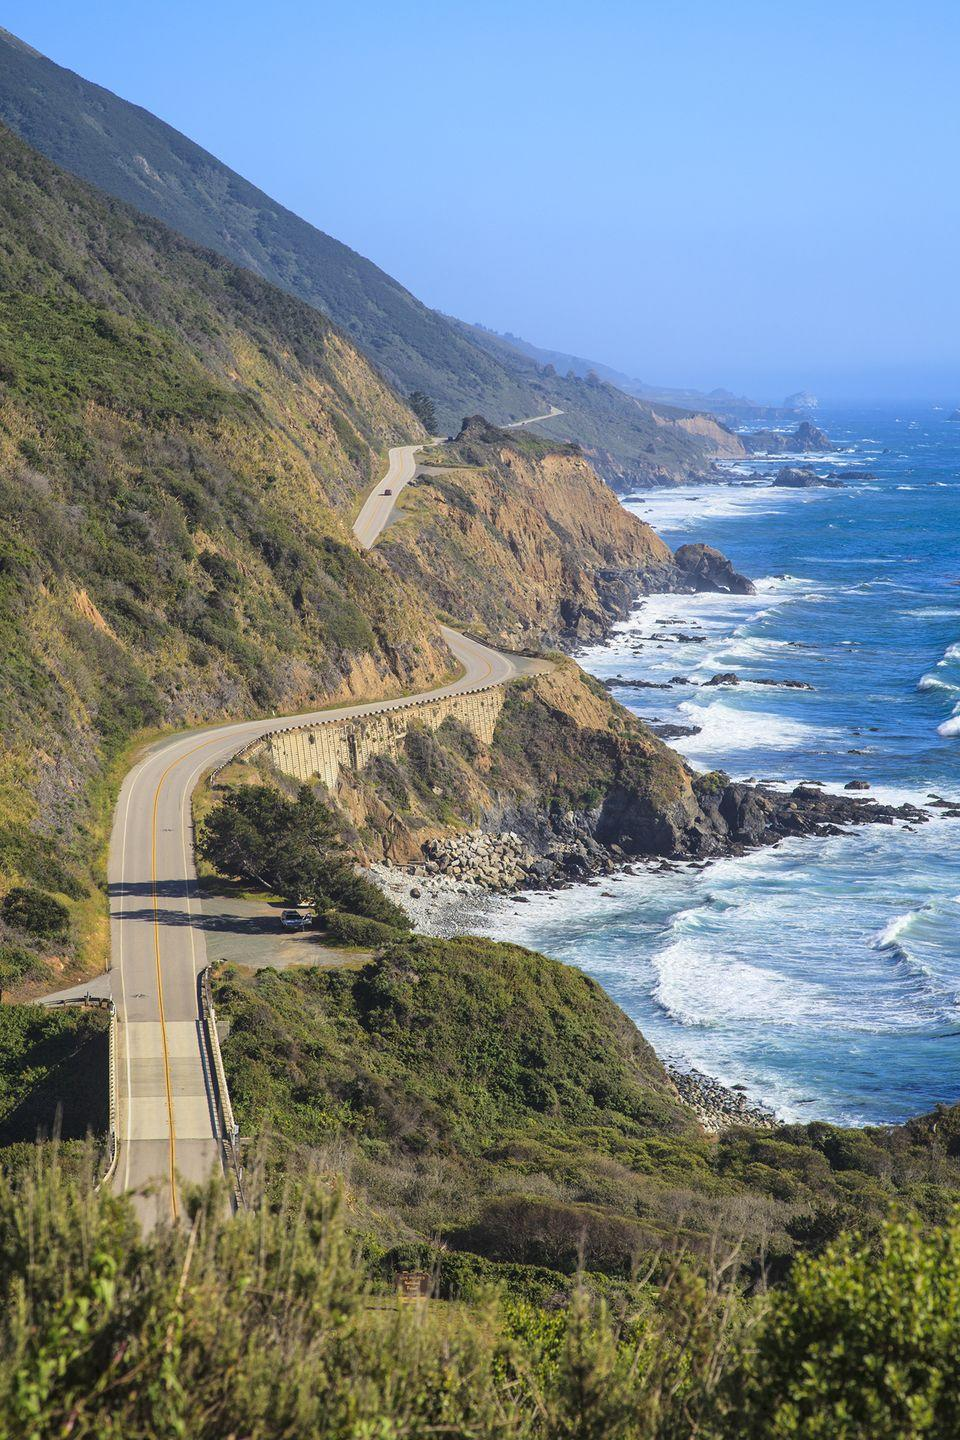 """<p><strong>The Drive: </strong><a href=""""https://www.tripadvisor.com/Attraction_Review-g28926-d147161-Reviews-Pacific_Coast_Highway-California.html"""" rel=""""nofollow noopener"""" target=""""_blank"""" data-ylk=""""slk:Pacific Coast Highway"""" class=""""link rapid-noclick-resp"""">Pacific Coast Highway</a></p><p><strong>The Scene:</strong> If you're pressed for time, but still want to behold California's beauty, take this cliff-side drive from Monterey to Morro Bay. Coast along the 139-mile route and you'll see <a href=""""https://www.tripadvisor.com/Tourism-g240329-Big_Sur_California-Vacations.html"""" rel=""""nofollow noopener"""" target=""""_blank"""" data-ylk=""""slk:Big Sur's"""" class=""""link rapid-noclick-resp"""">Big Sur's</a> Bixby Bridge, picturesque <a href=""""https://www.tripadvisor.com/Tourism-g32172-Carmel_Monterey_County_California-Vacations.html"""" rel=""""nofollow noopener"""" target=""""_blank"""" data-ylk=""""slk:Carmel-by-the-Sea"""" class=""""link rapid-noclick-resp"""">Carmel-by-the-Sea</a>, the <a href=""""https://www.tripadvisor.com/Attraction_Review-g33039-d207444-Reviews-Hearst_Castle-San_Simeon_San_Luis_Obispo_County_California.html"""" rel=""""nofollow noopener"""" target=""""_blank"""" data-ylk=""""slk:Hearst Castle"""" class=""""link rapid-noclick-resp"""">Hearst Castle</a>, and much more on the way.</p><p><strong>The Pit-Stop:</strong> Stop at <a href=""""https://www.tripadvisor.com/Attraction_Review-g240329-d116839-Reviews-Pfeiffer_Big_Sur_State_Park-Big_Sur_California.html"""" rel=""""nofollow noopener"""" target=""""_blank"""" data-ylk=""""slk:Pfeiffer State Beach"""" class=""""link rapid-noclick-resp"""">Pfeiffer State Beach</a> for photo-ops with the Pacific Ocean. </p>"""